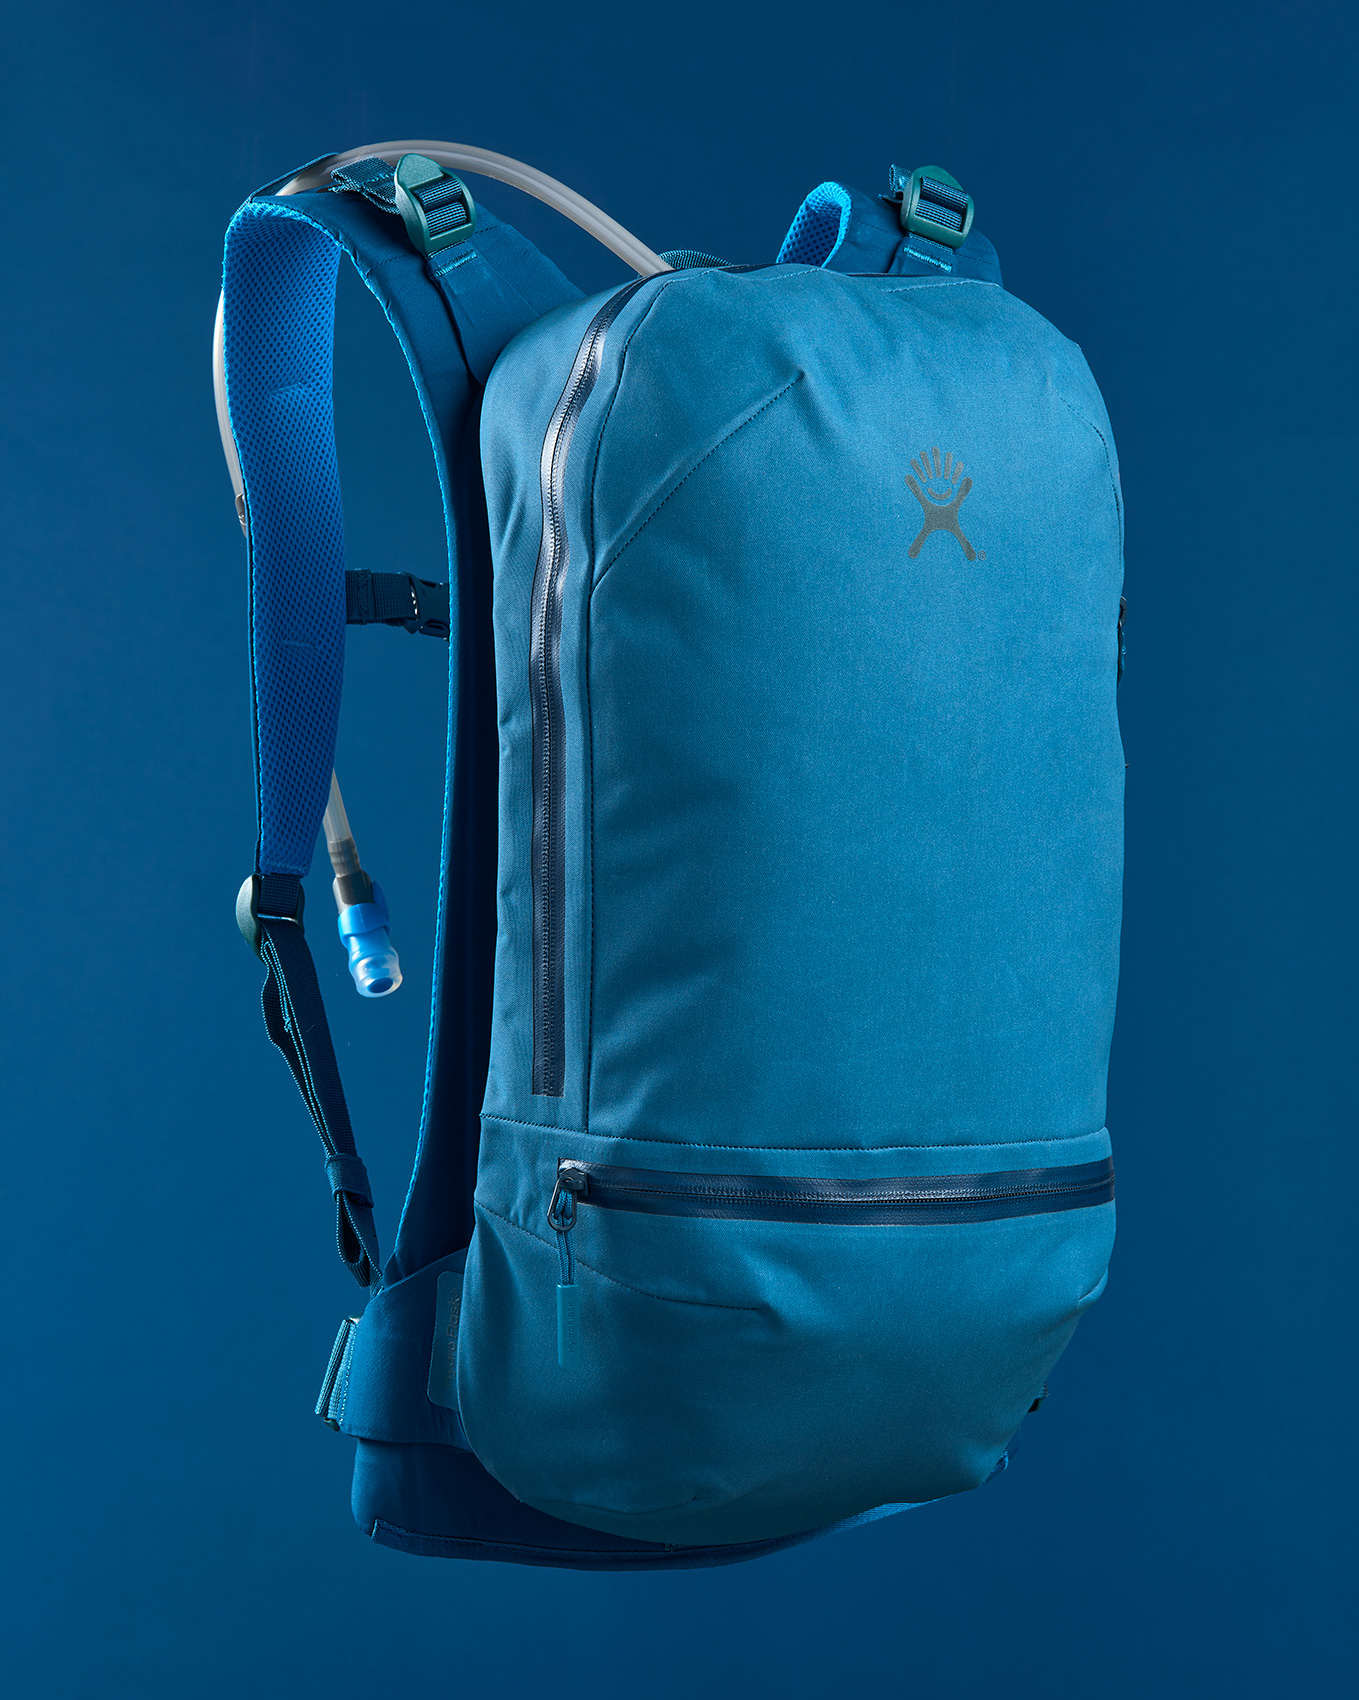 Backpack-Advertising-Product-Photography-Bend-Oregon